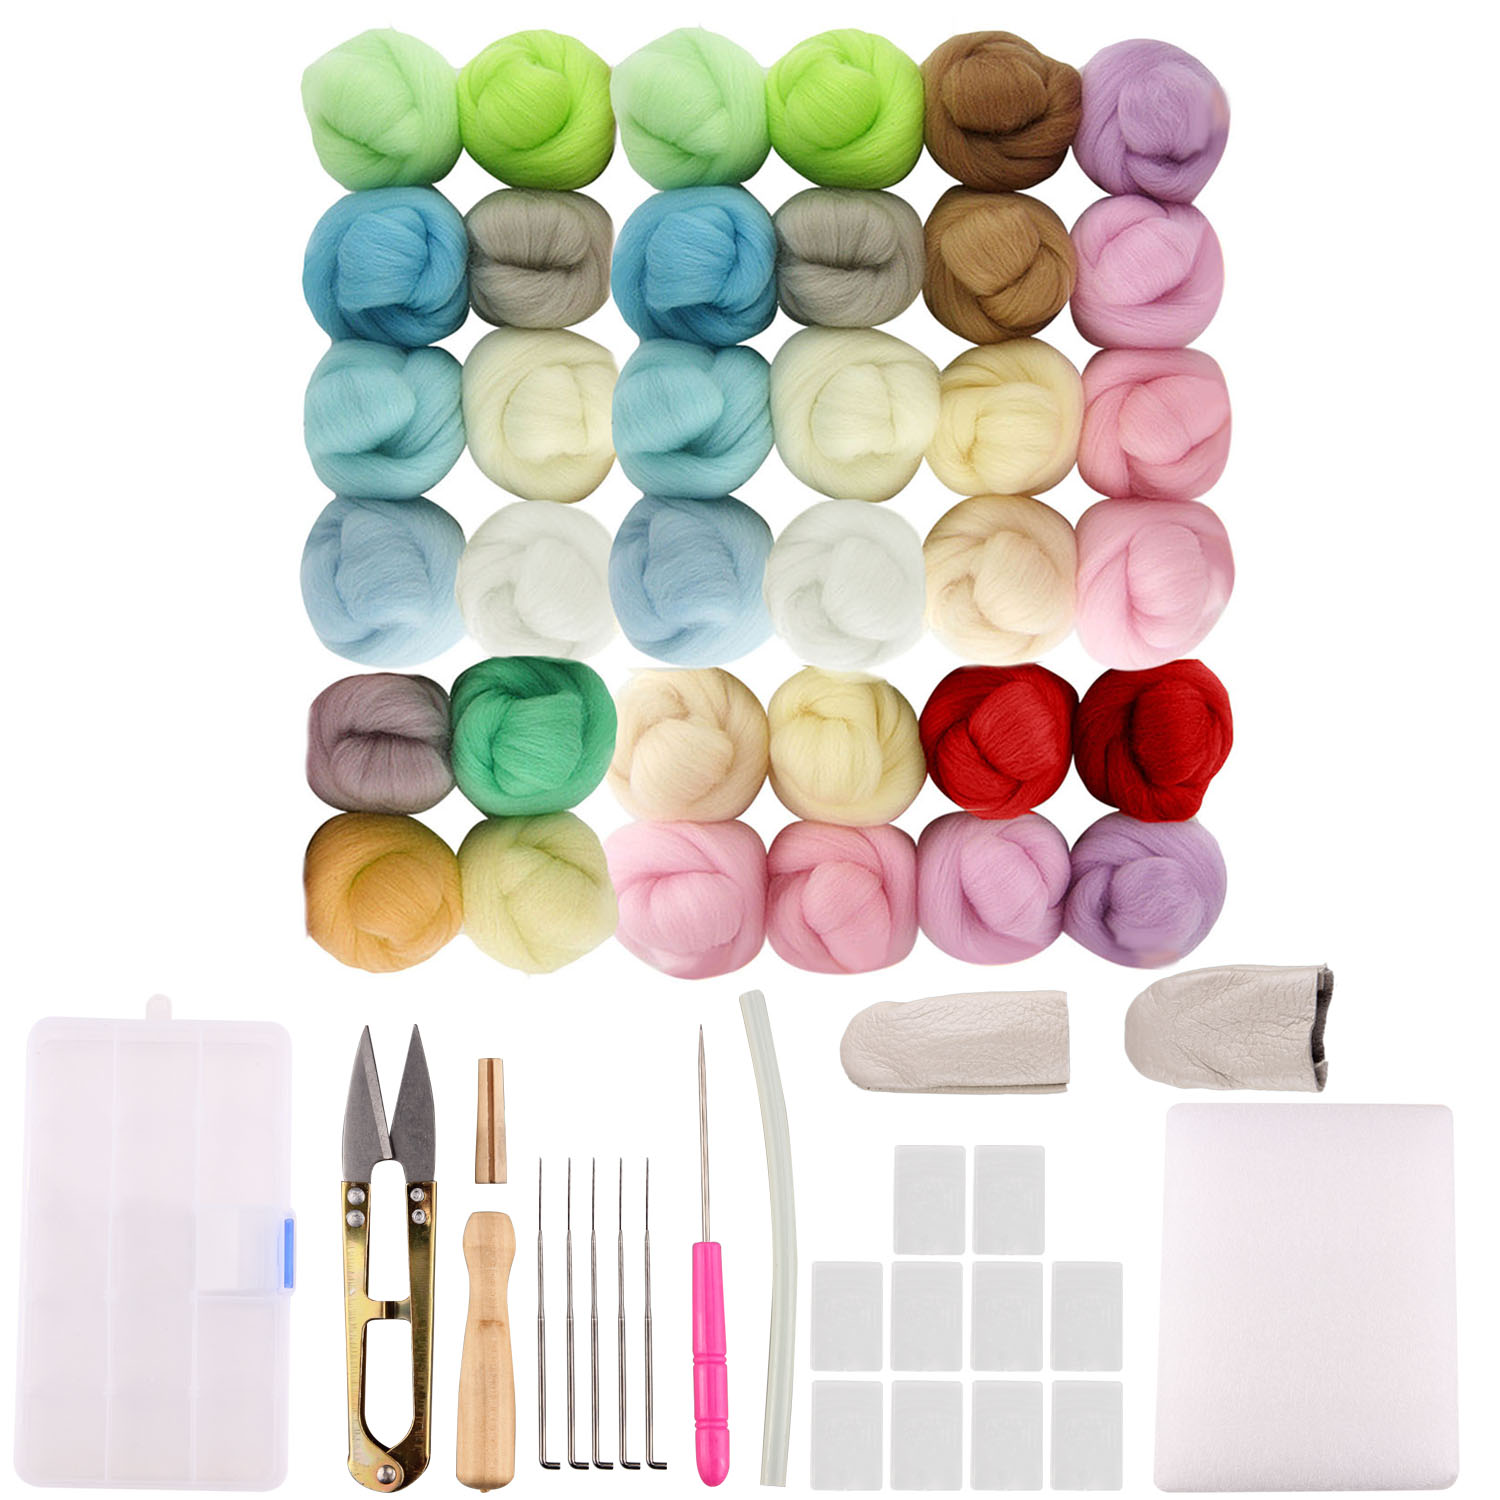 36 Color Wool Needle Felting Tools Kit For Kids Adults DIY Craft Doll Jewelry Making Spinning Weaving Fabric Materials Handcraft